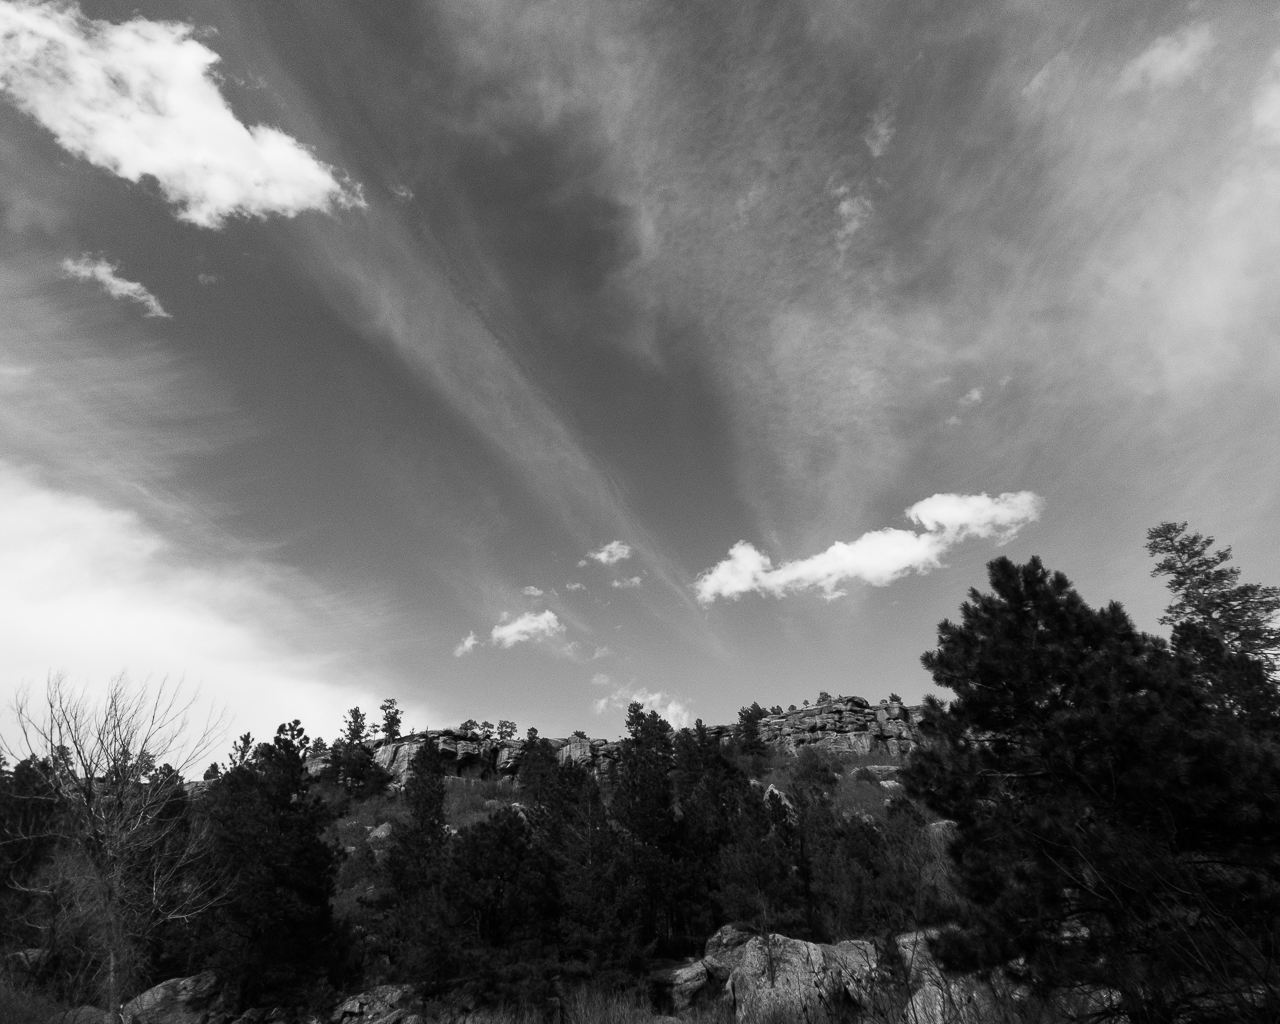 Day 197 - 365 Day B&W Photo Challenge - Streams across the sky. - Google Pixel 3, Moment Wide Lens, Adobe Lightroom Mobile Edit